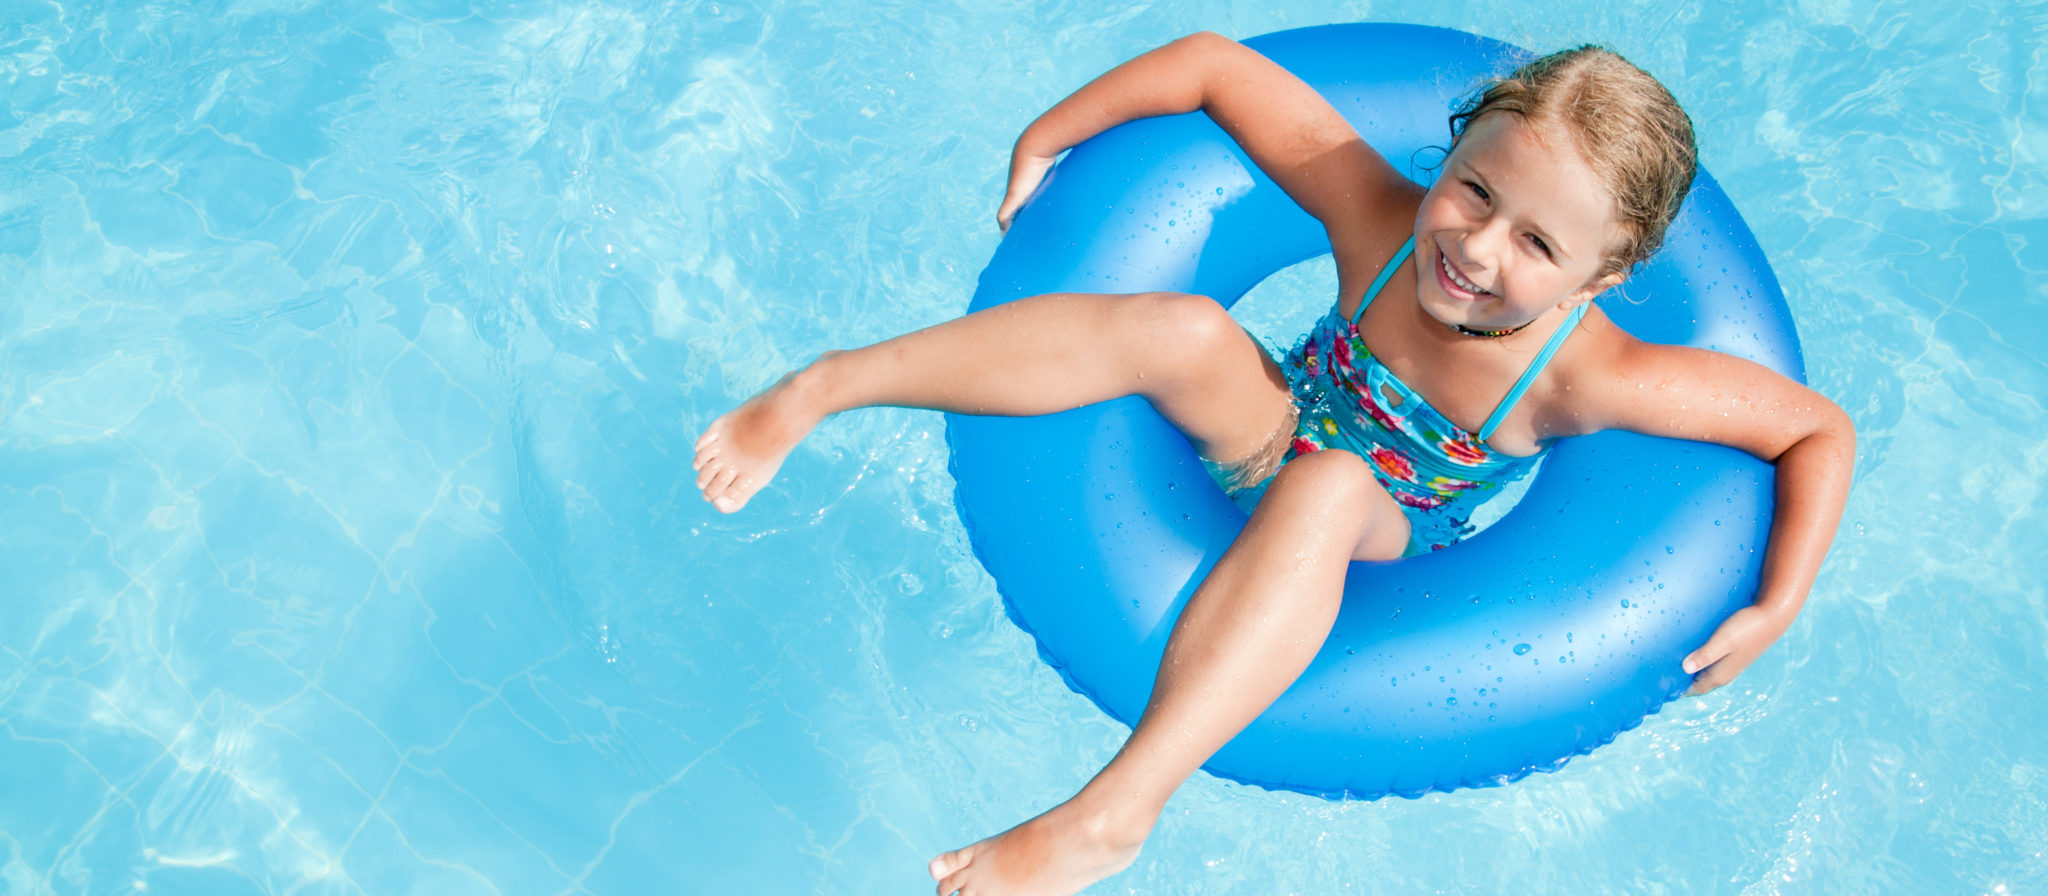 Children are encouraged to swim thanks to toys that swim in water!